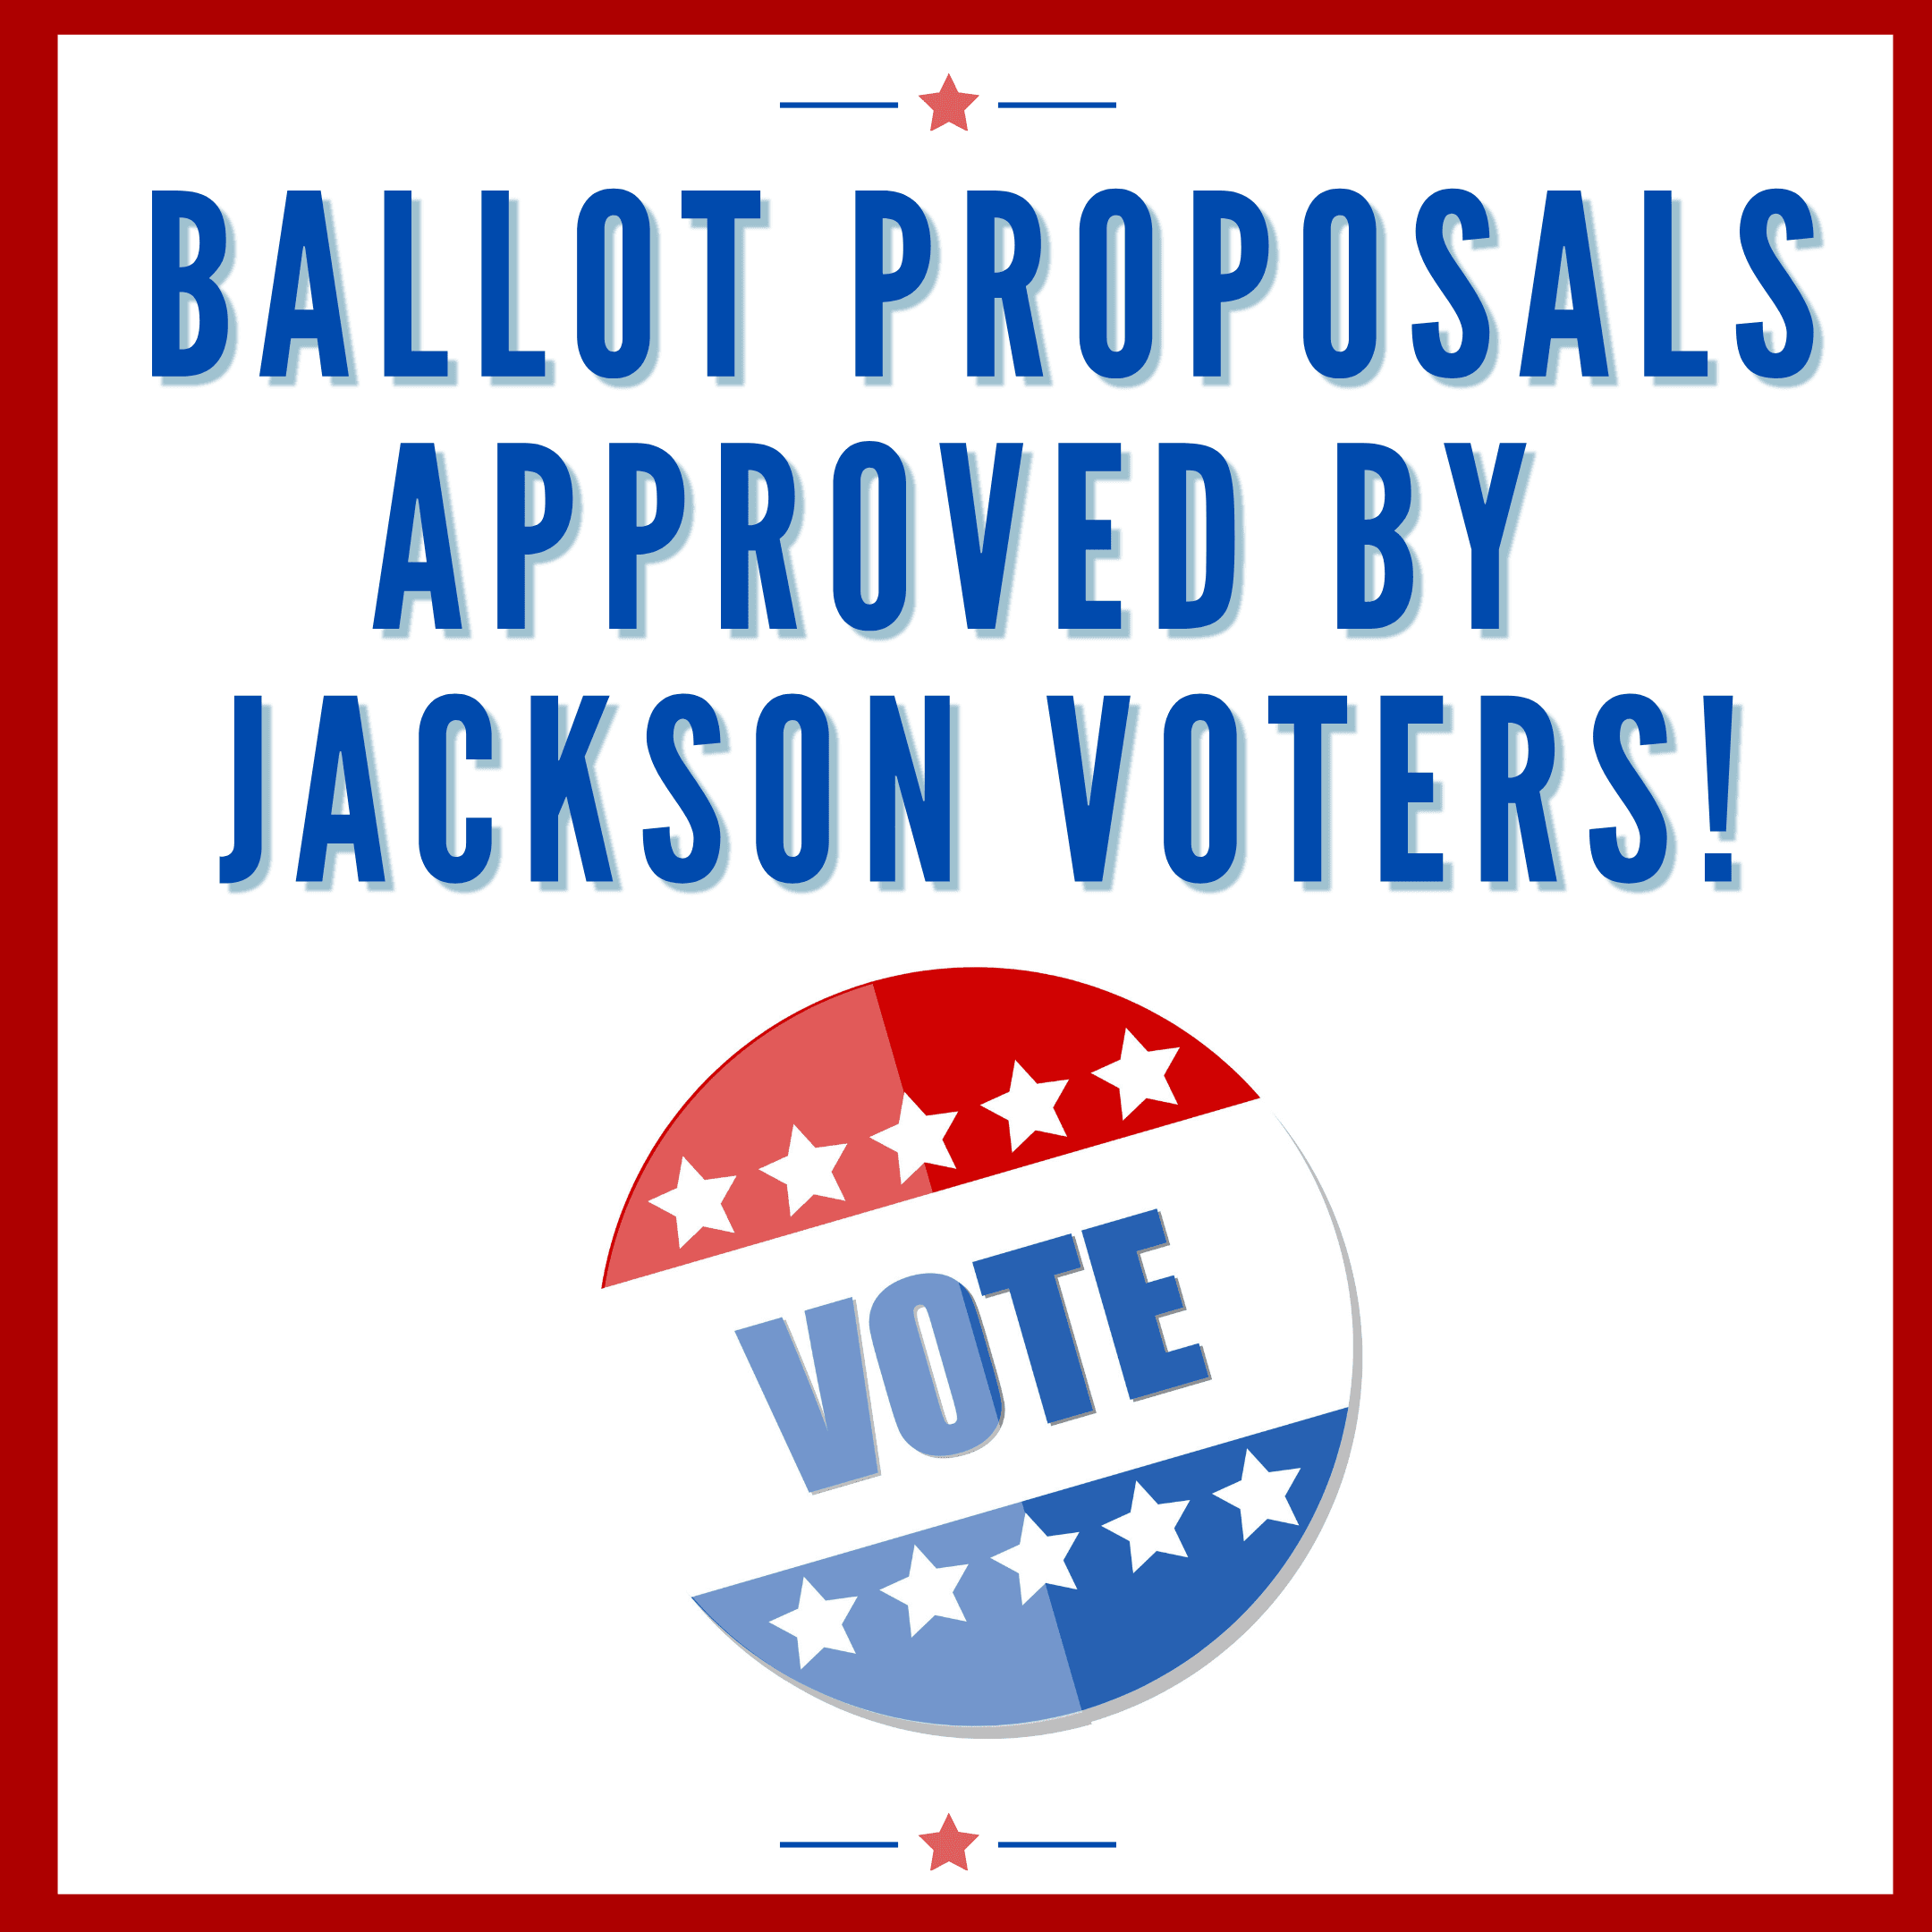 Ballot proposals approved